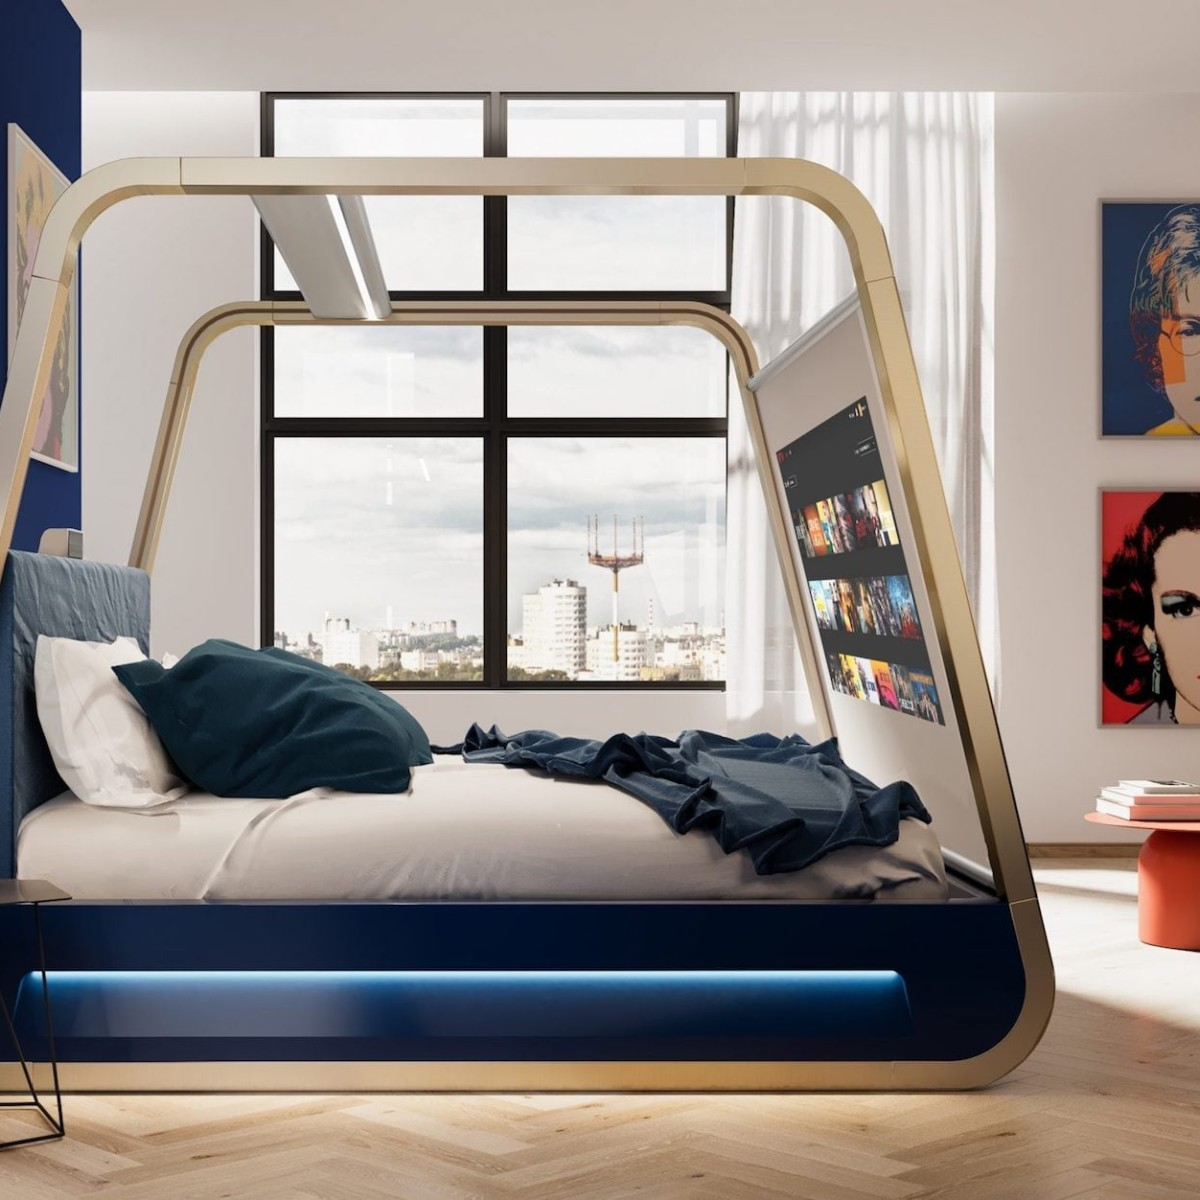 Mind-blowing gadgets for your bedroom thumbnail